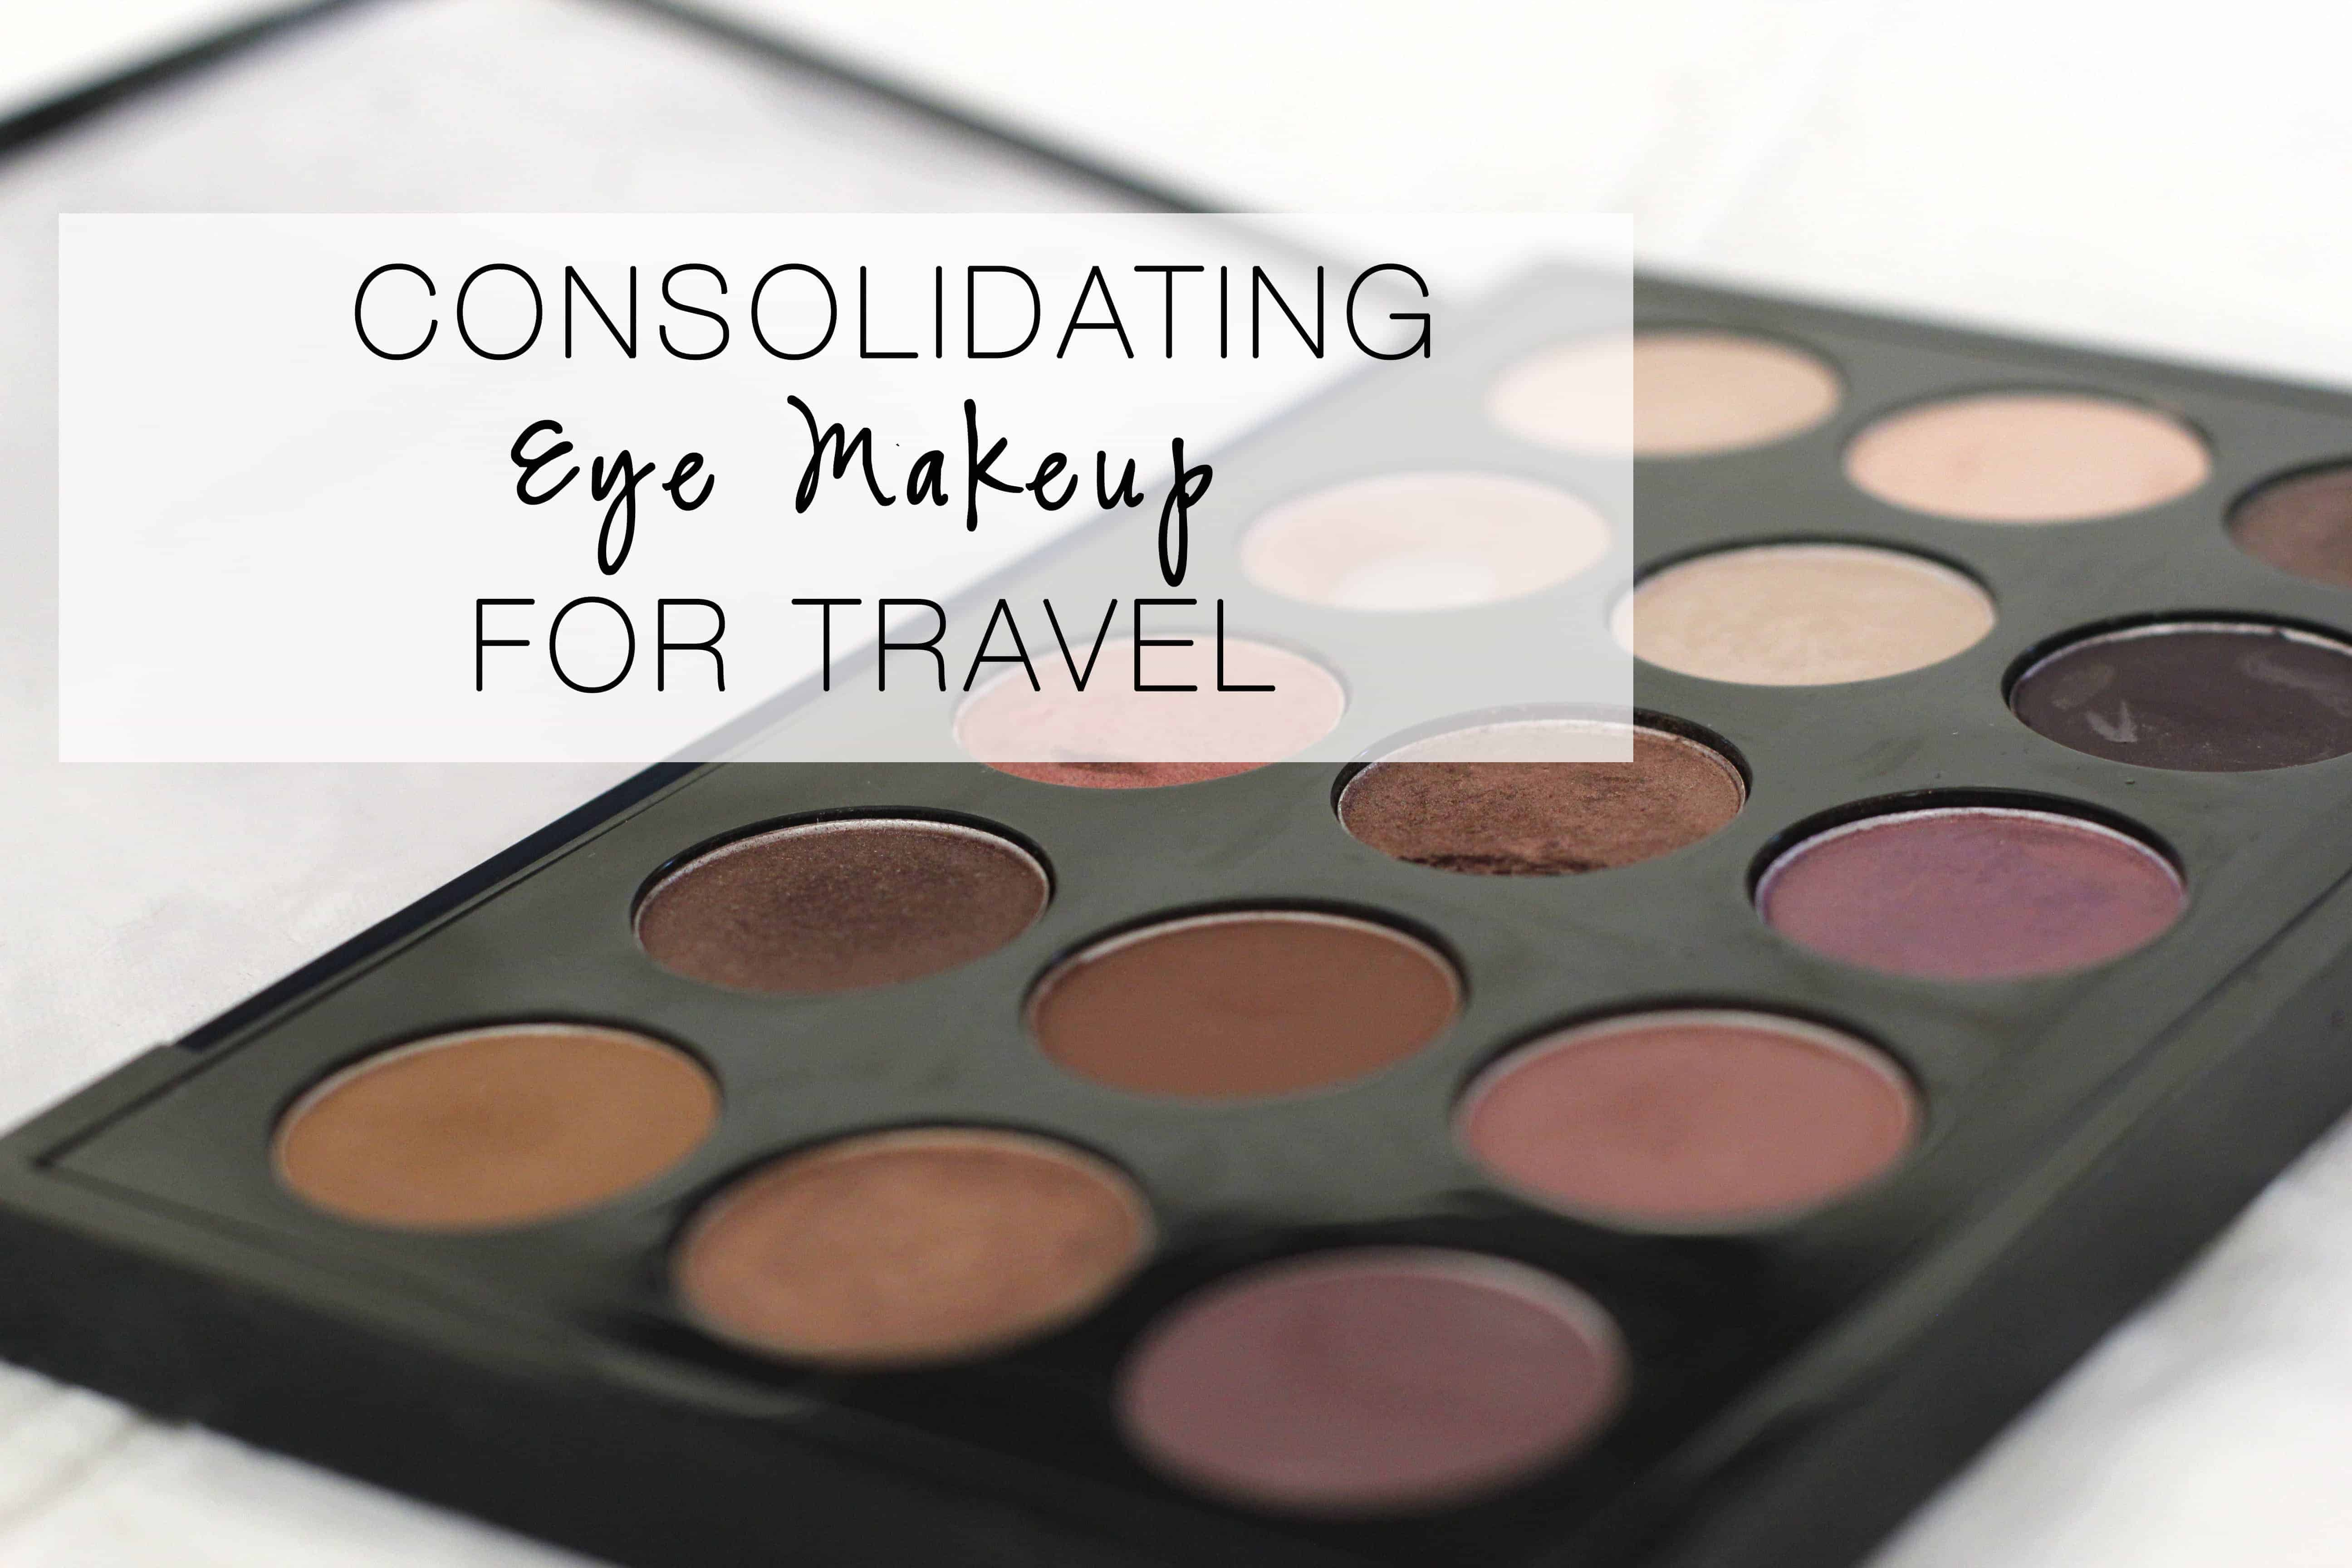 Eyemakeup for travel